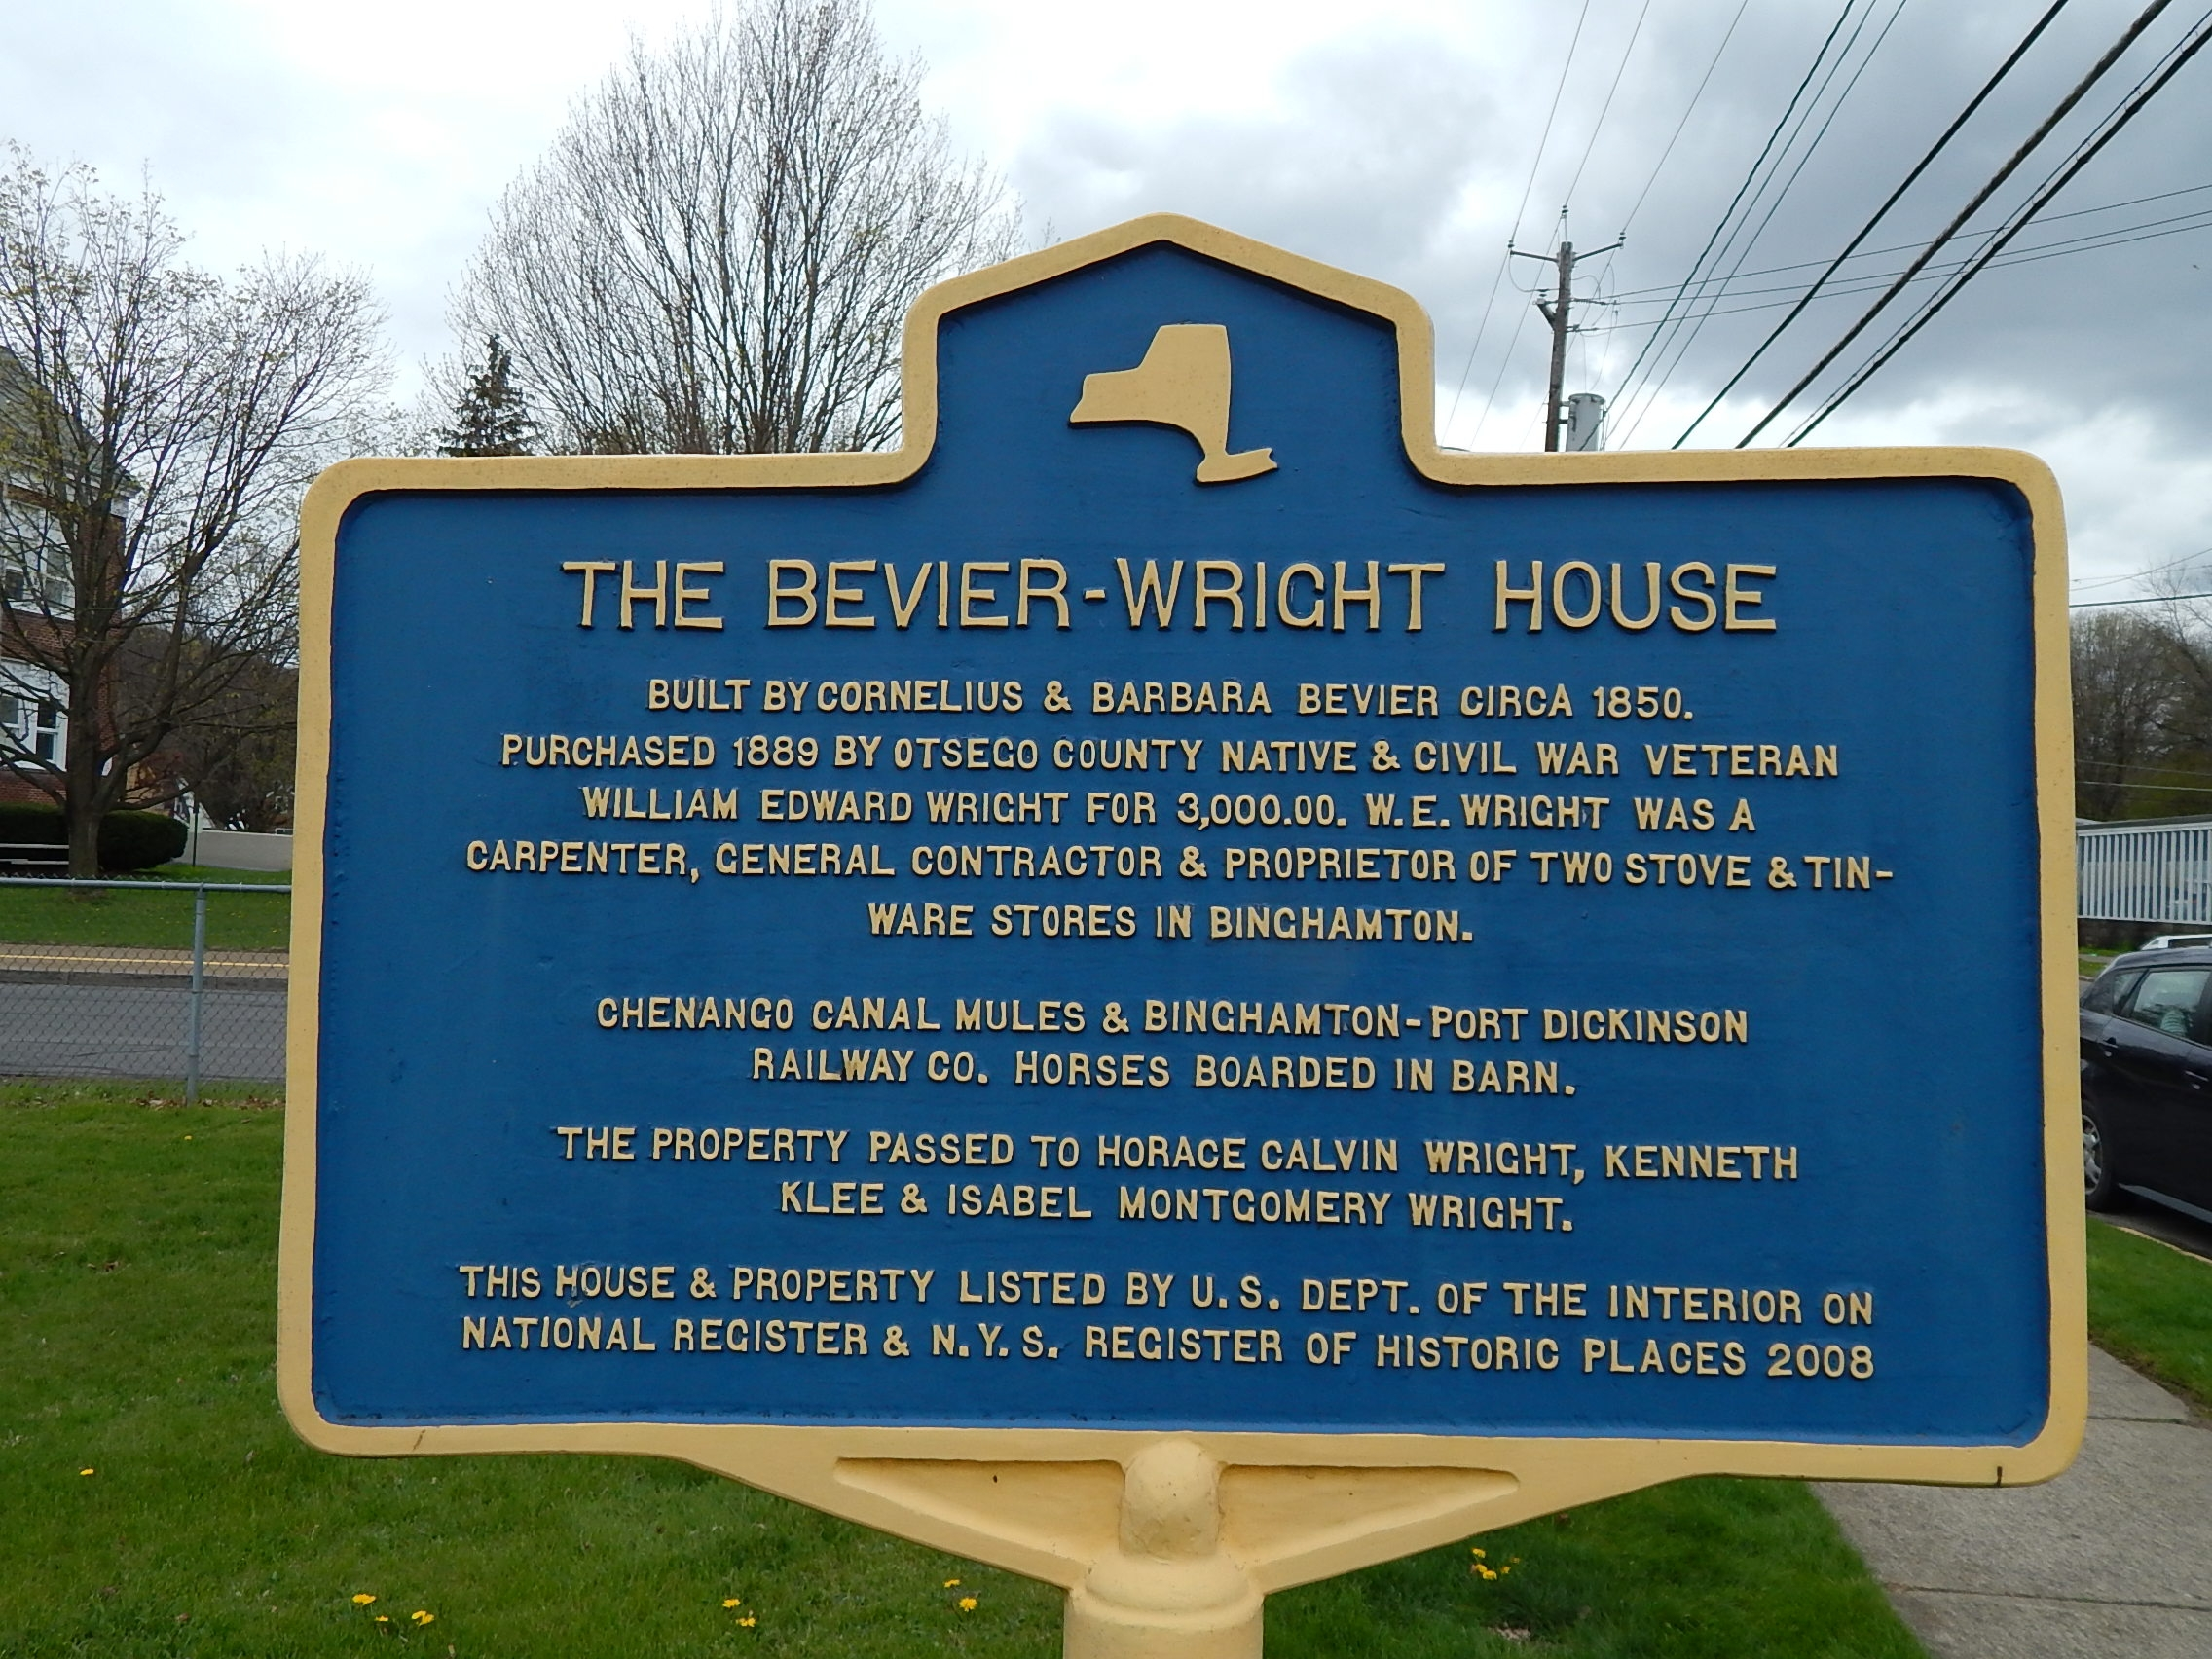 The Bevier-Wright House Marker